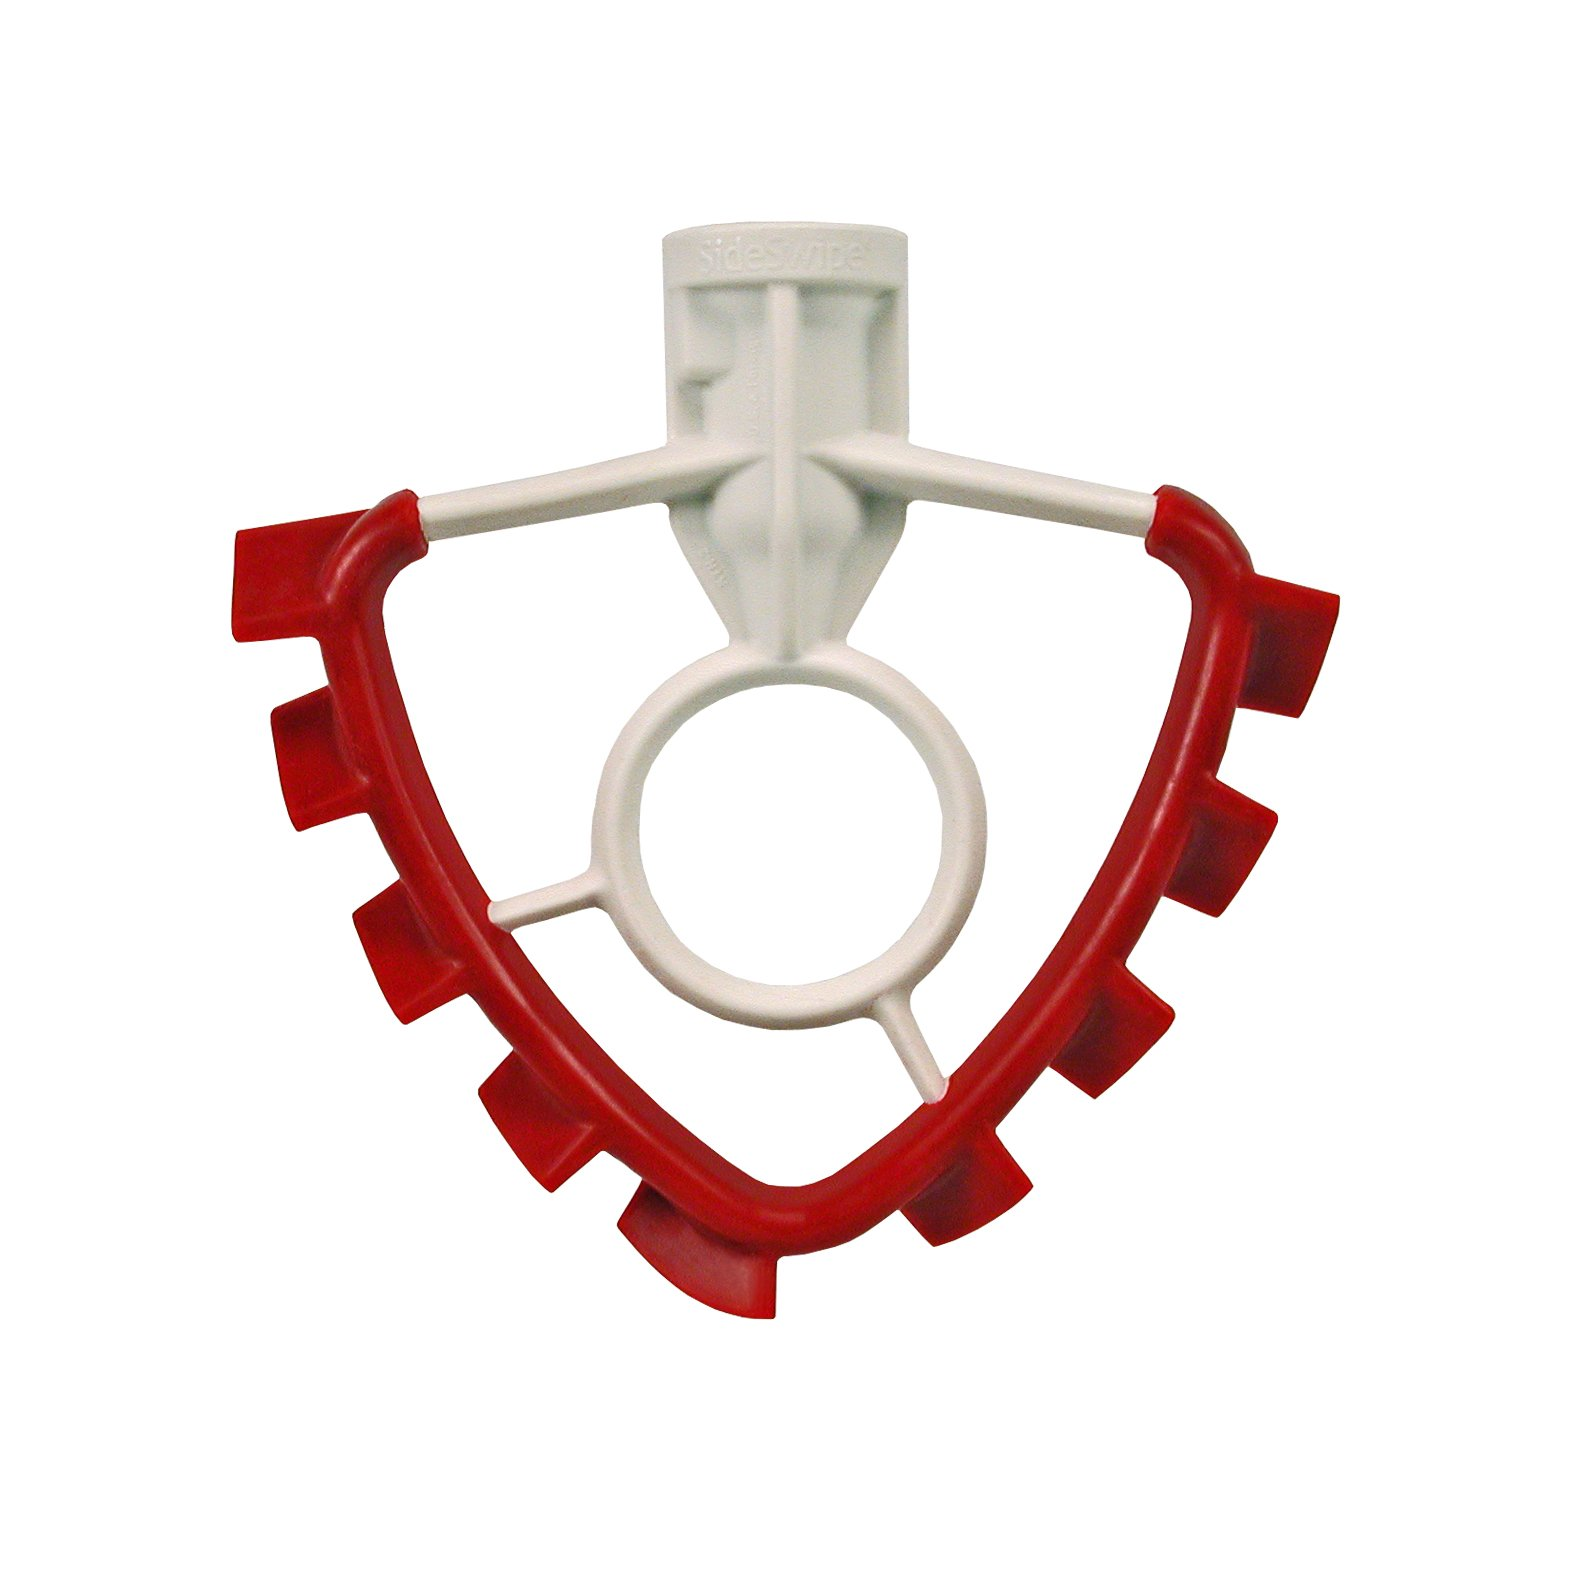 SideSwipe flex edge beater for KitchenAid Tilt-Head Mixers, in Red